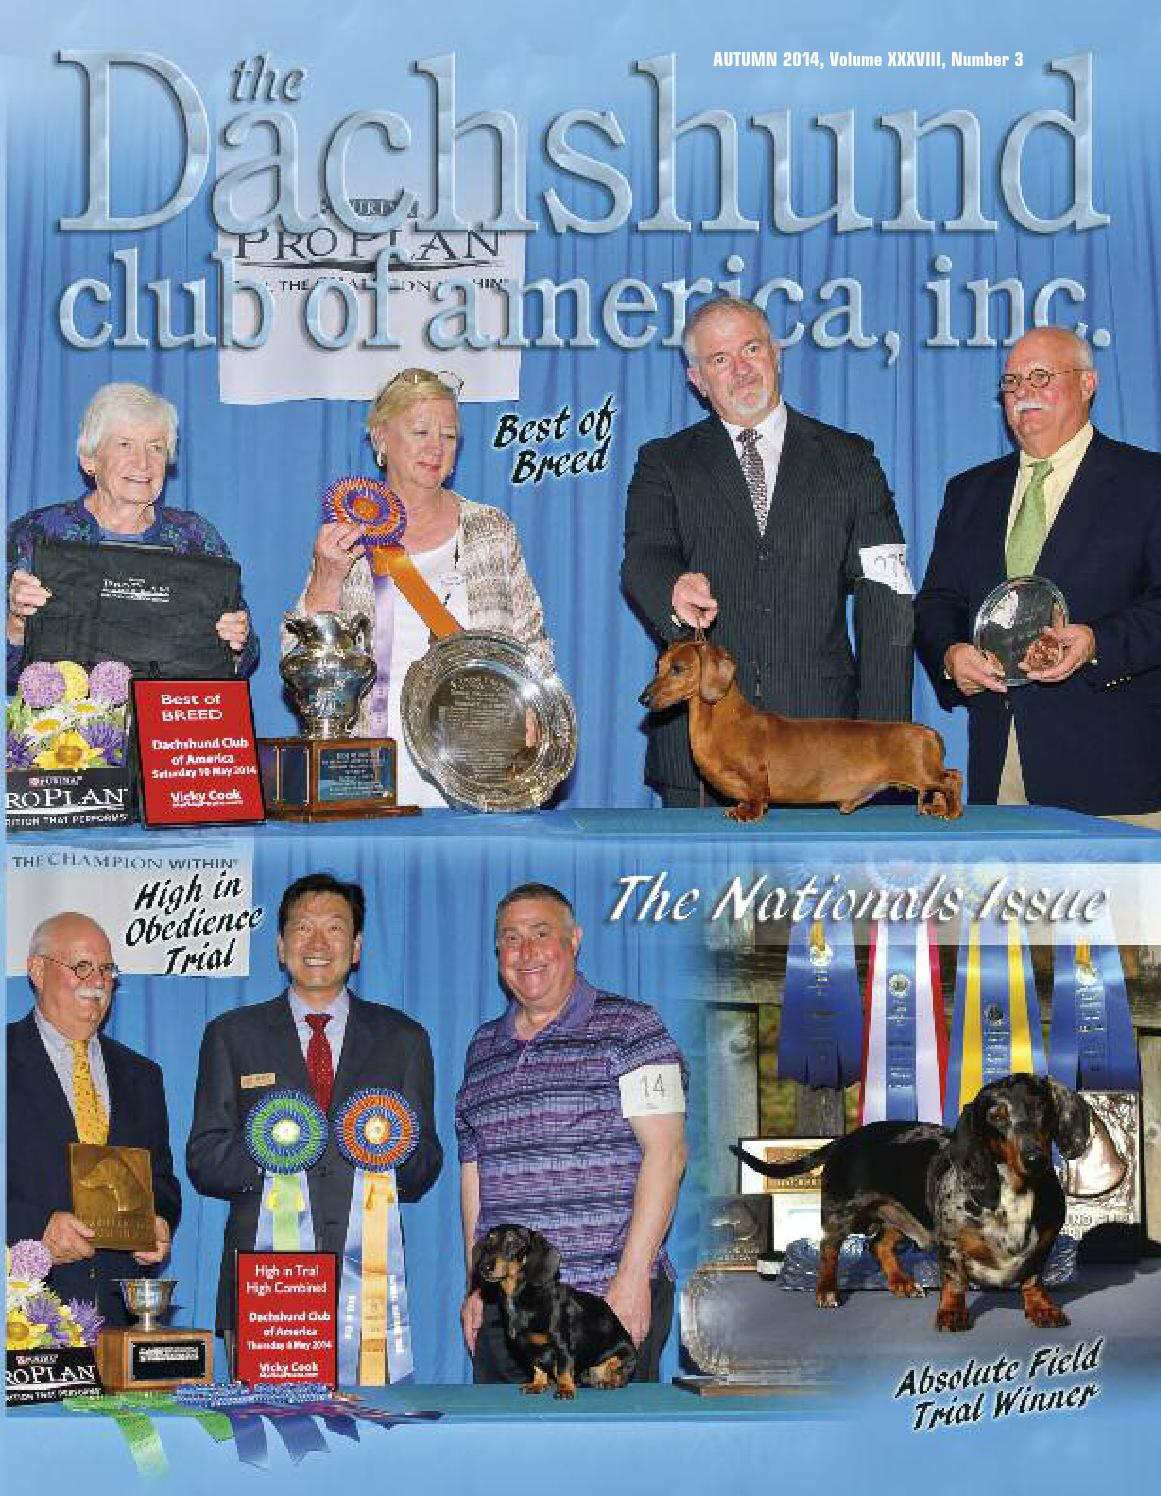 Dachshund Club of America Newsletter Autumn 2014 by Lynne Dahlen - issuu